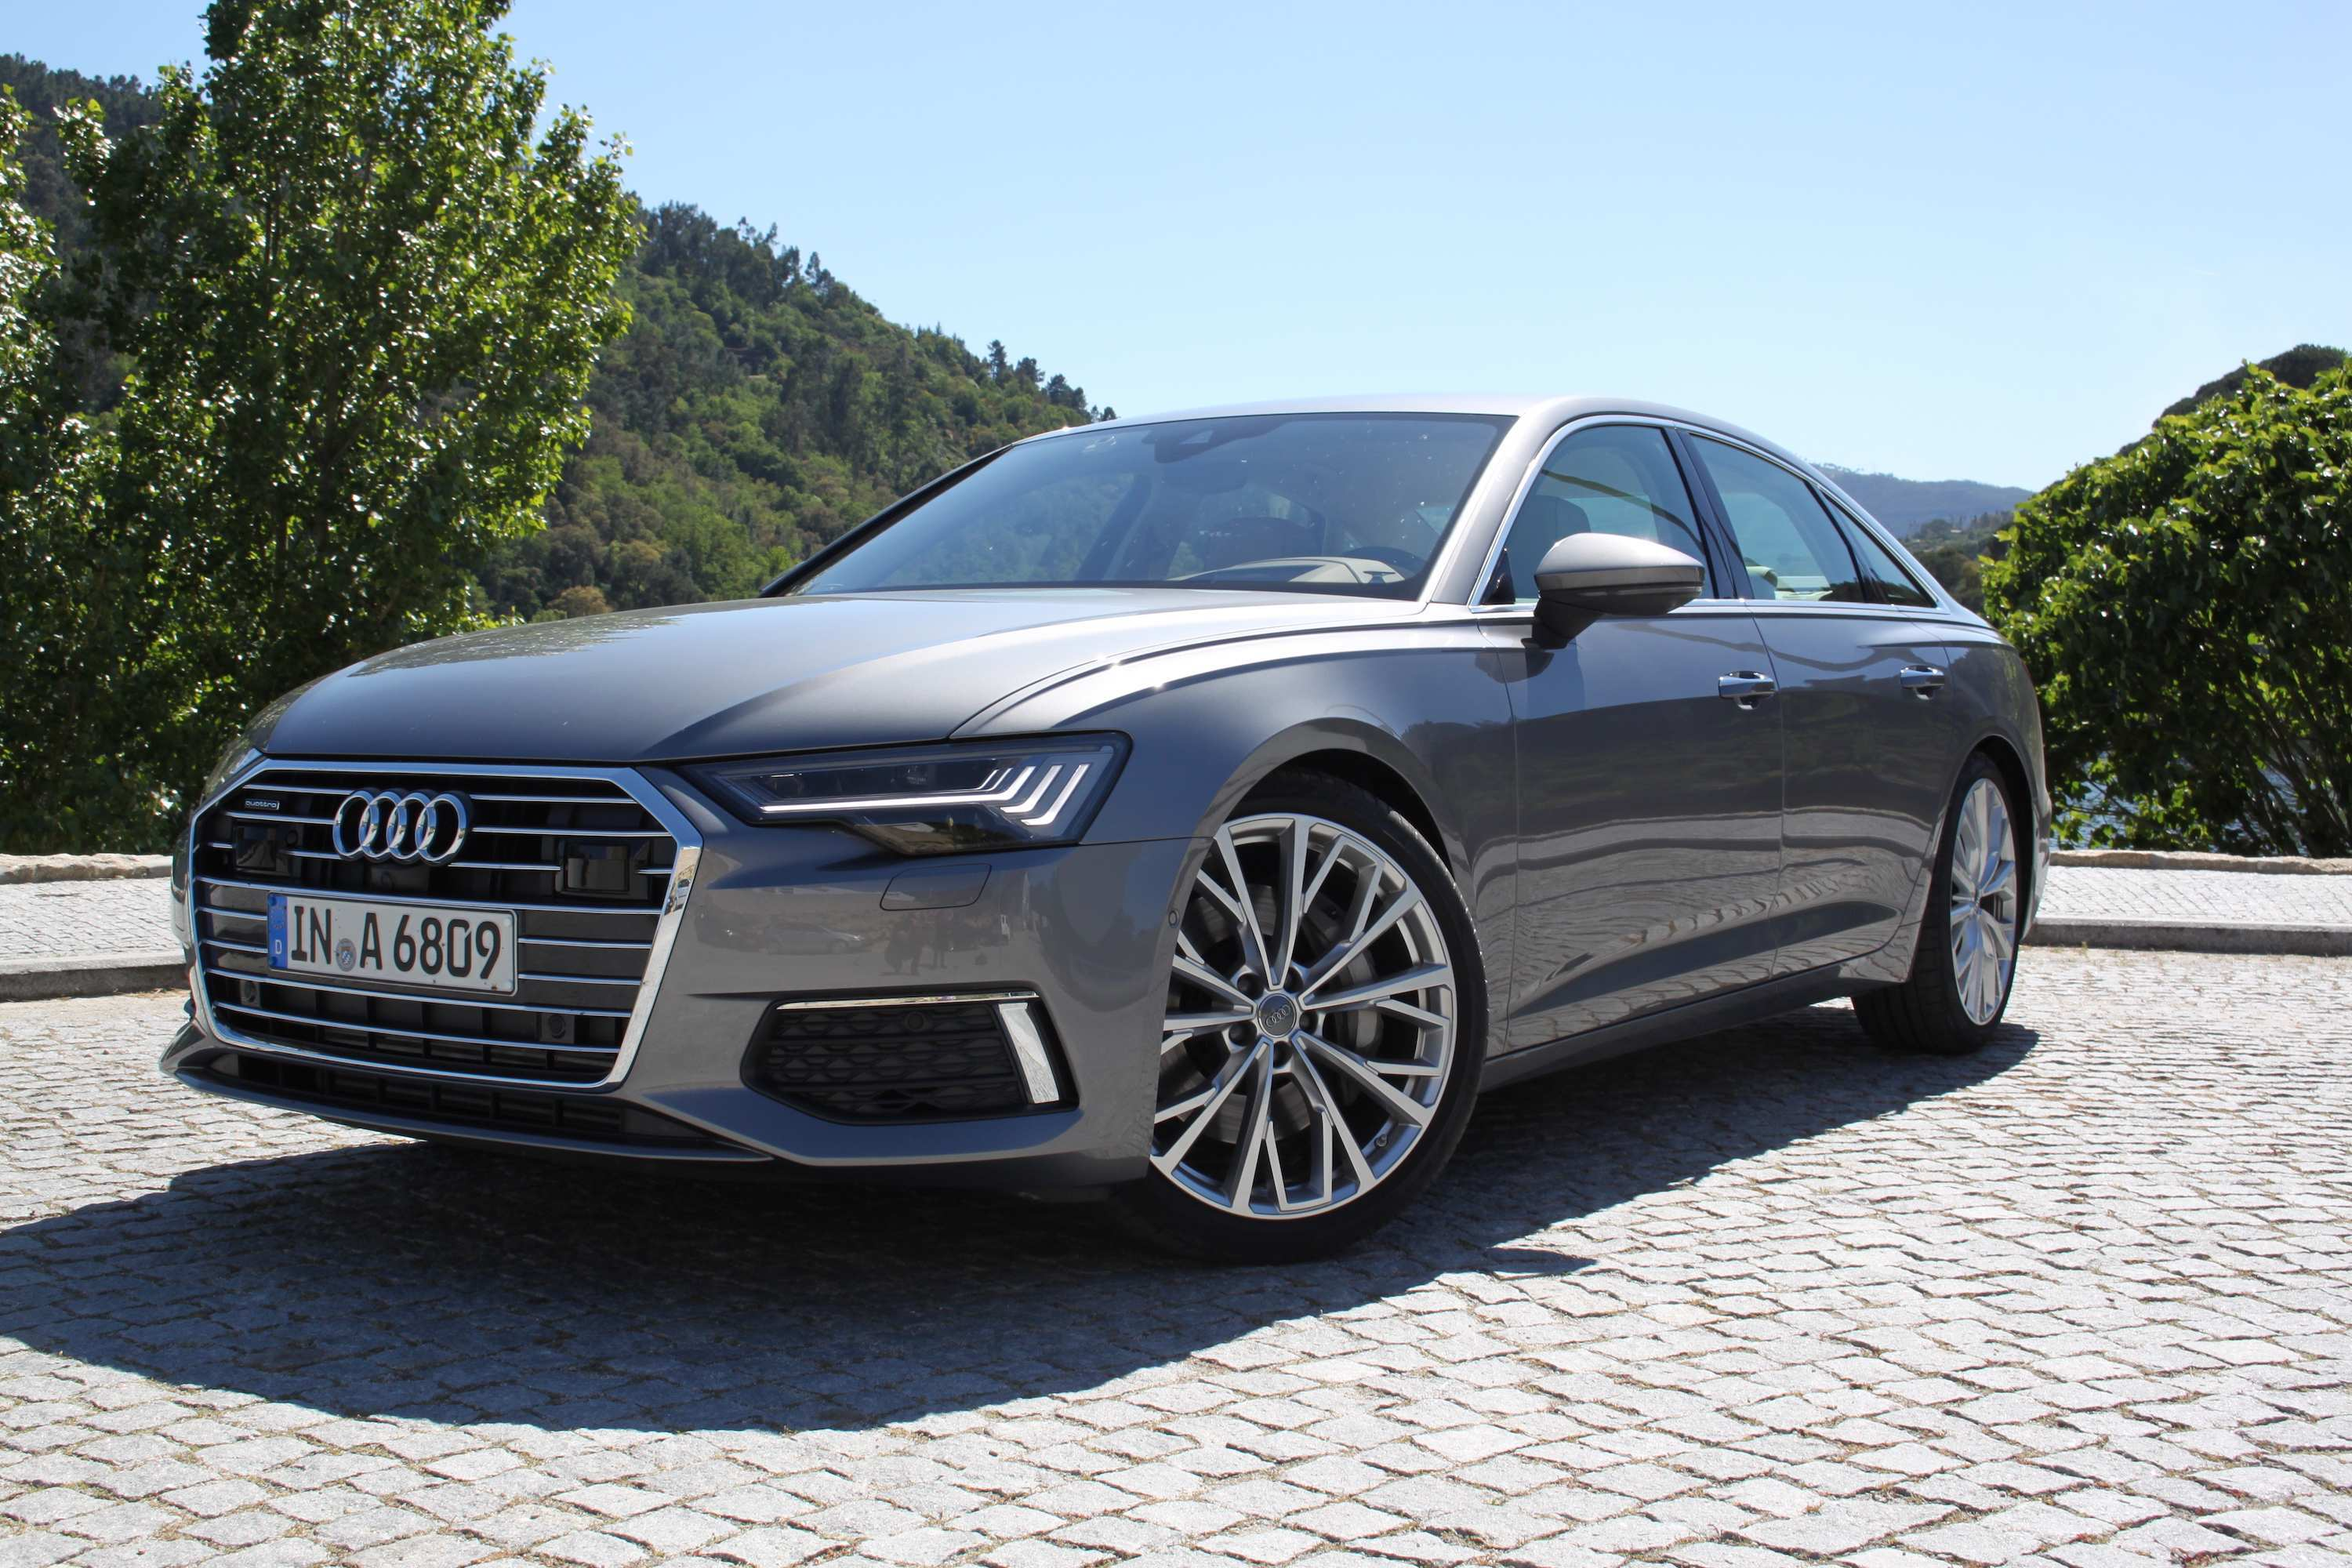 99 All New 2019 Audi A6 Review Exterior